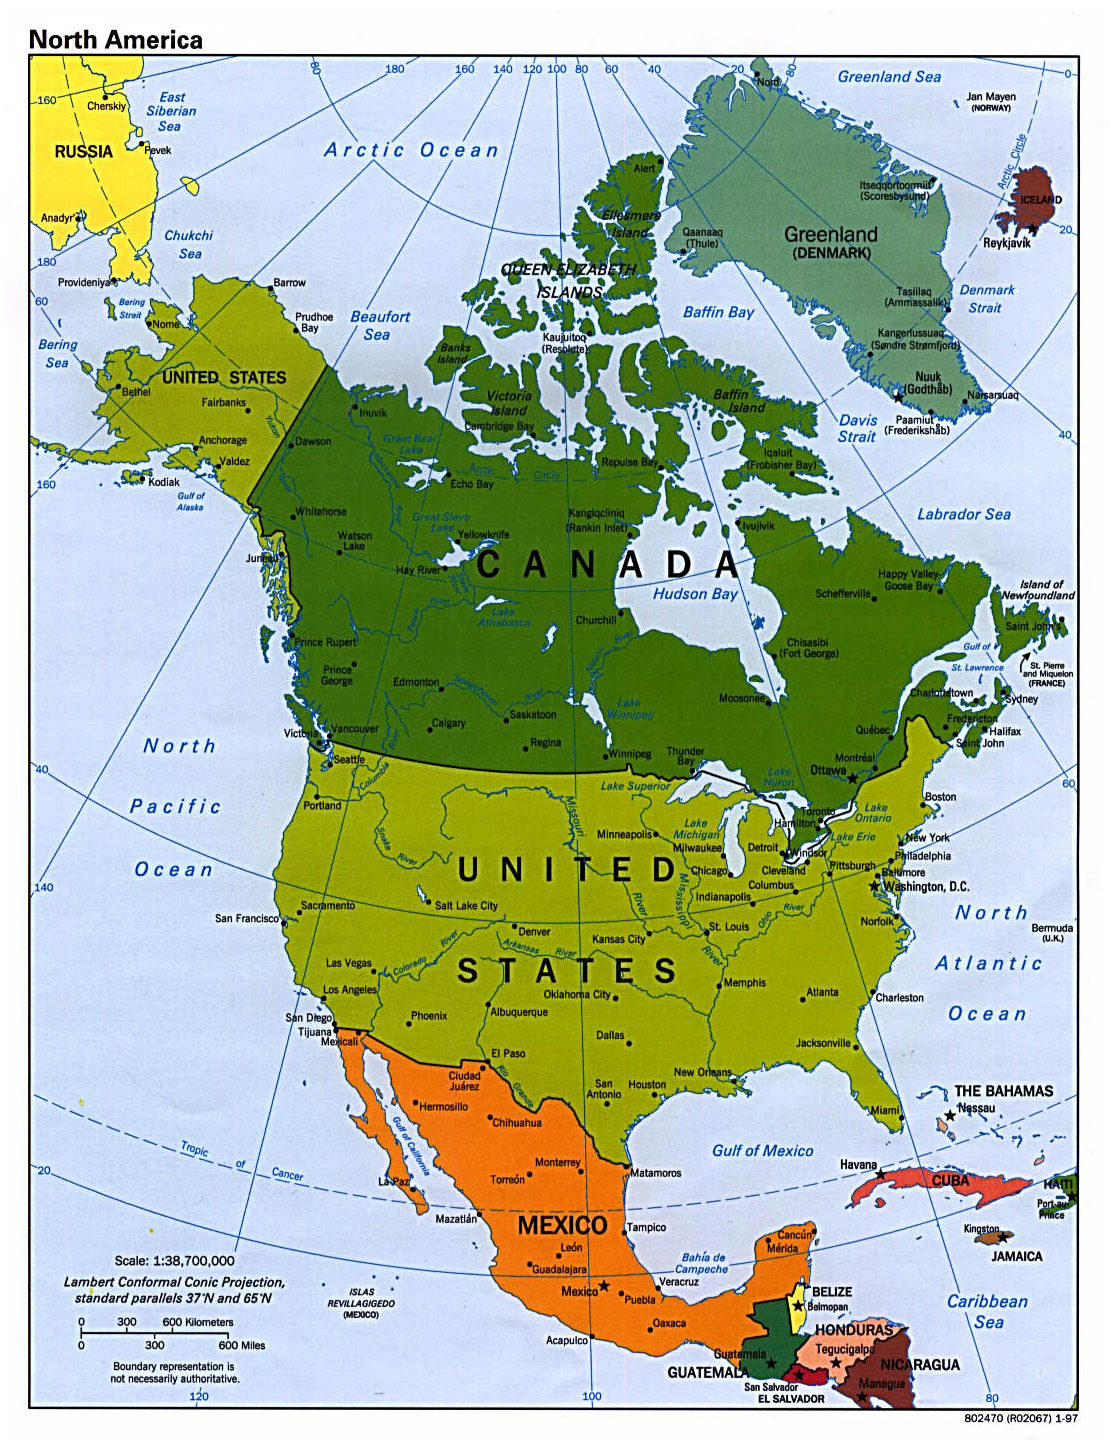 Detailed political map of North America with major cities 1997